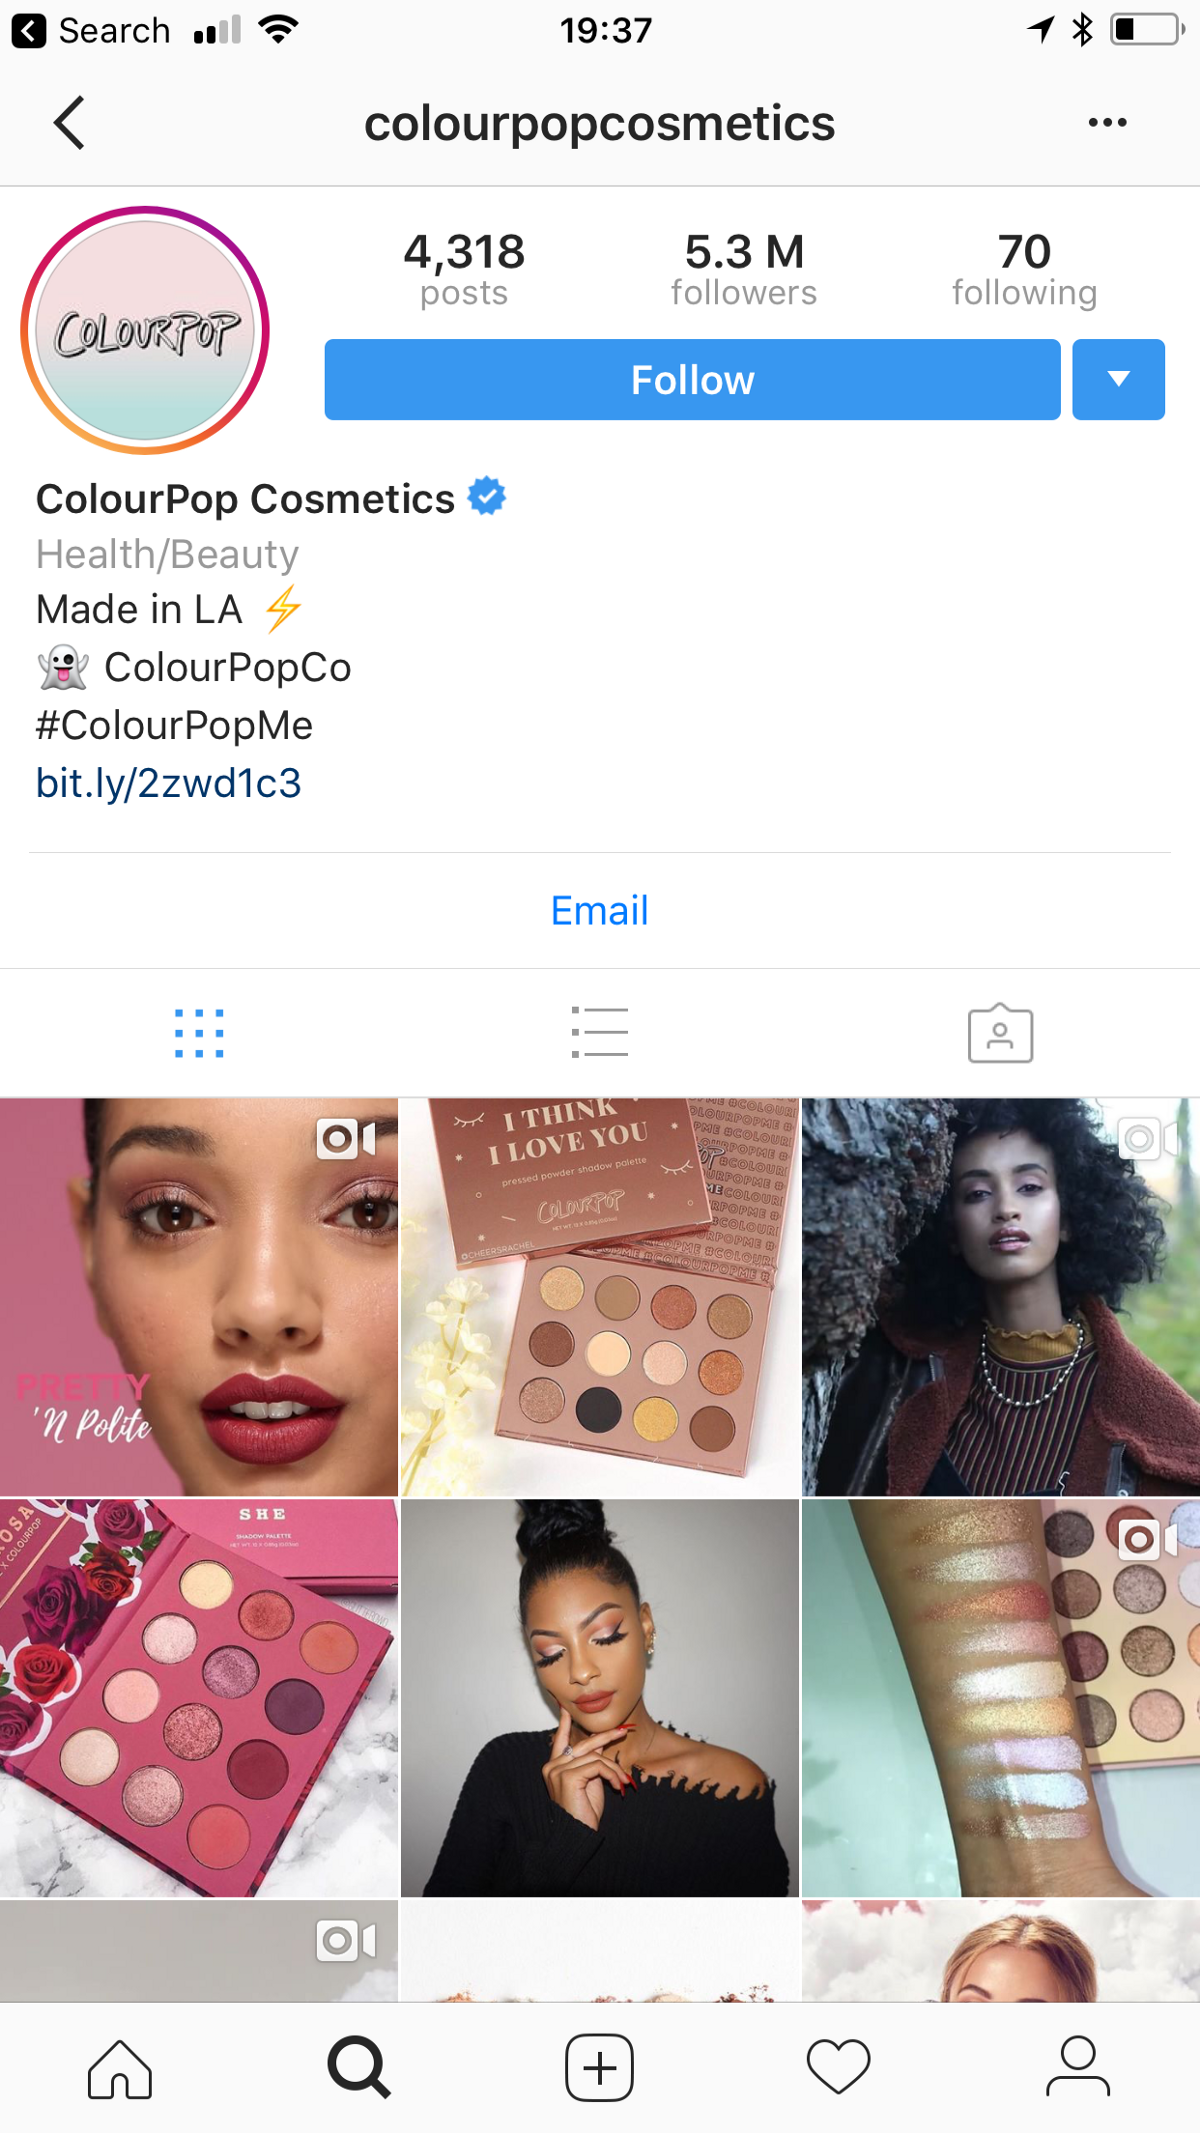 853ee4b2a At the time of writing this article, ColourPop has a whopping 5.3m Instagram  followers.